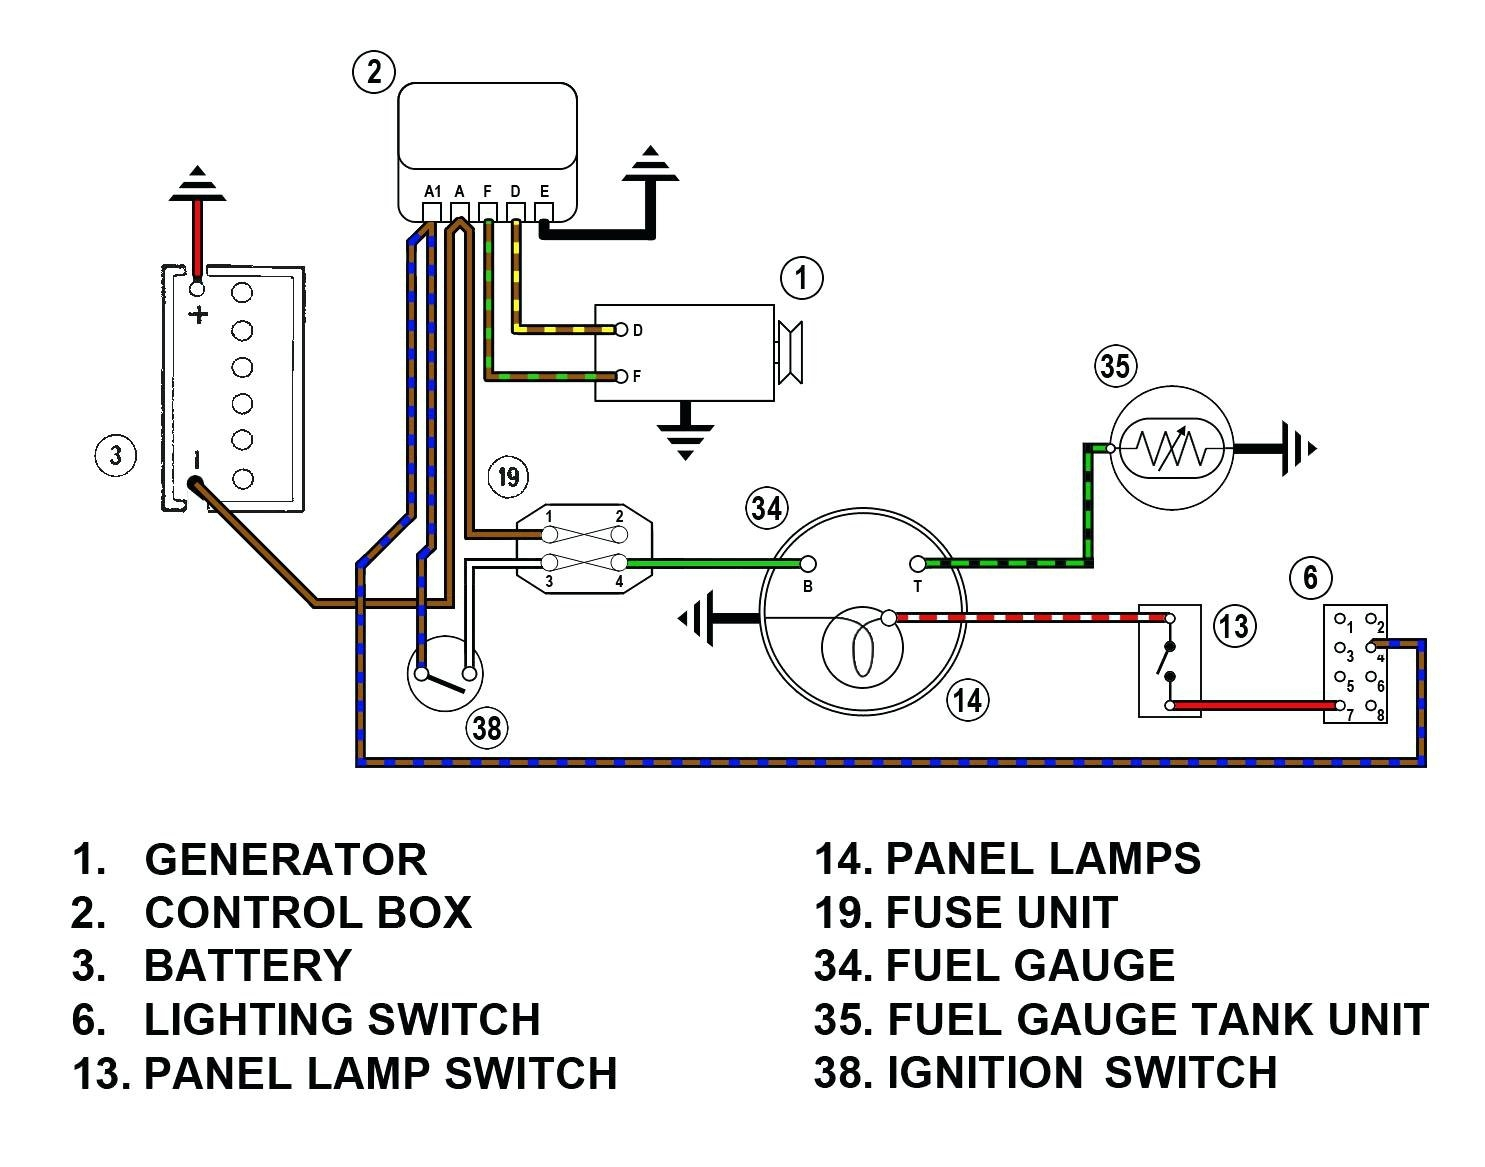 marine wiring diagram software Download-Battery Circuit Diagram Elegant 2 Battery Boat Wiring Diagram 3-a